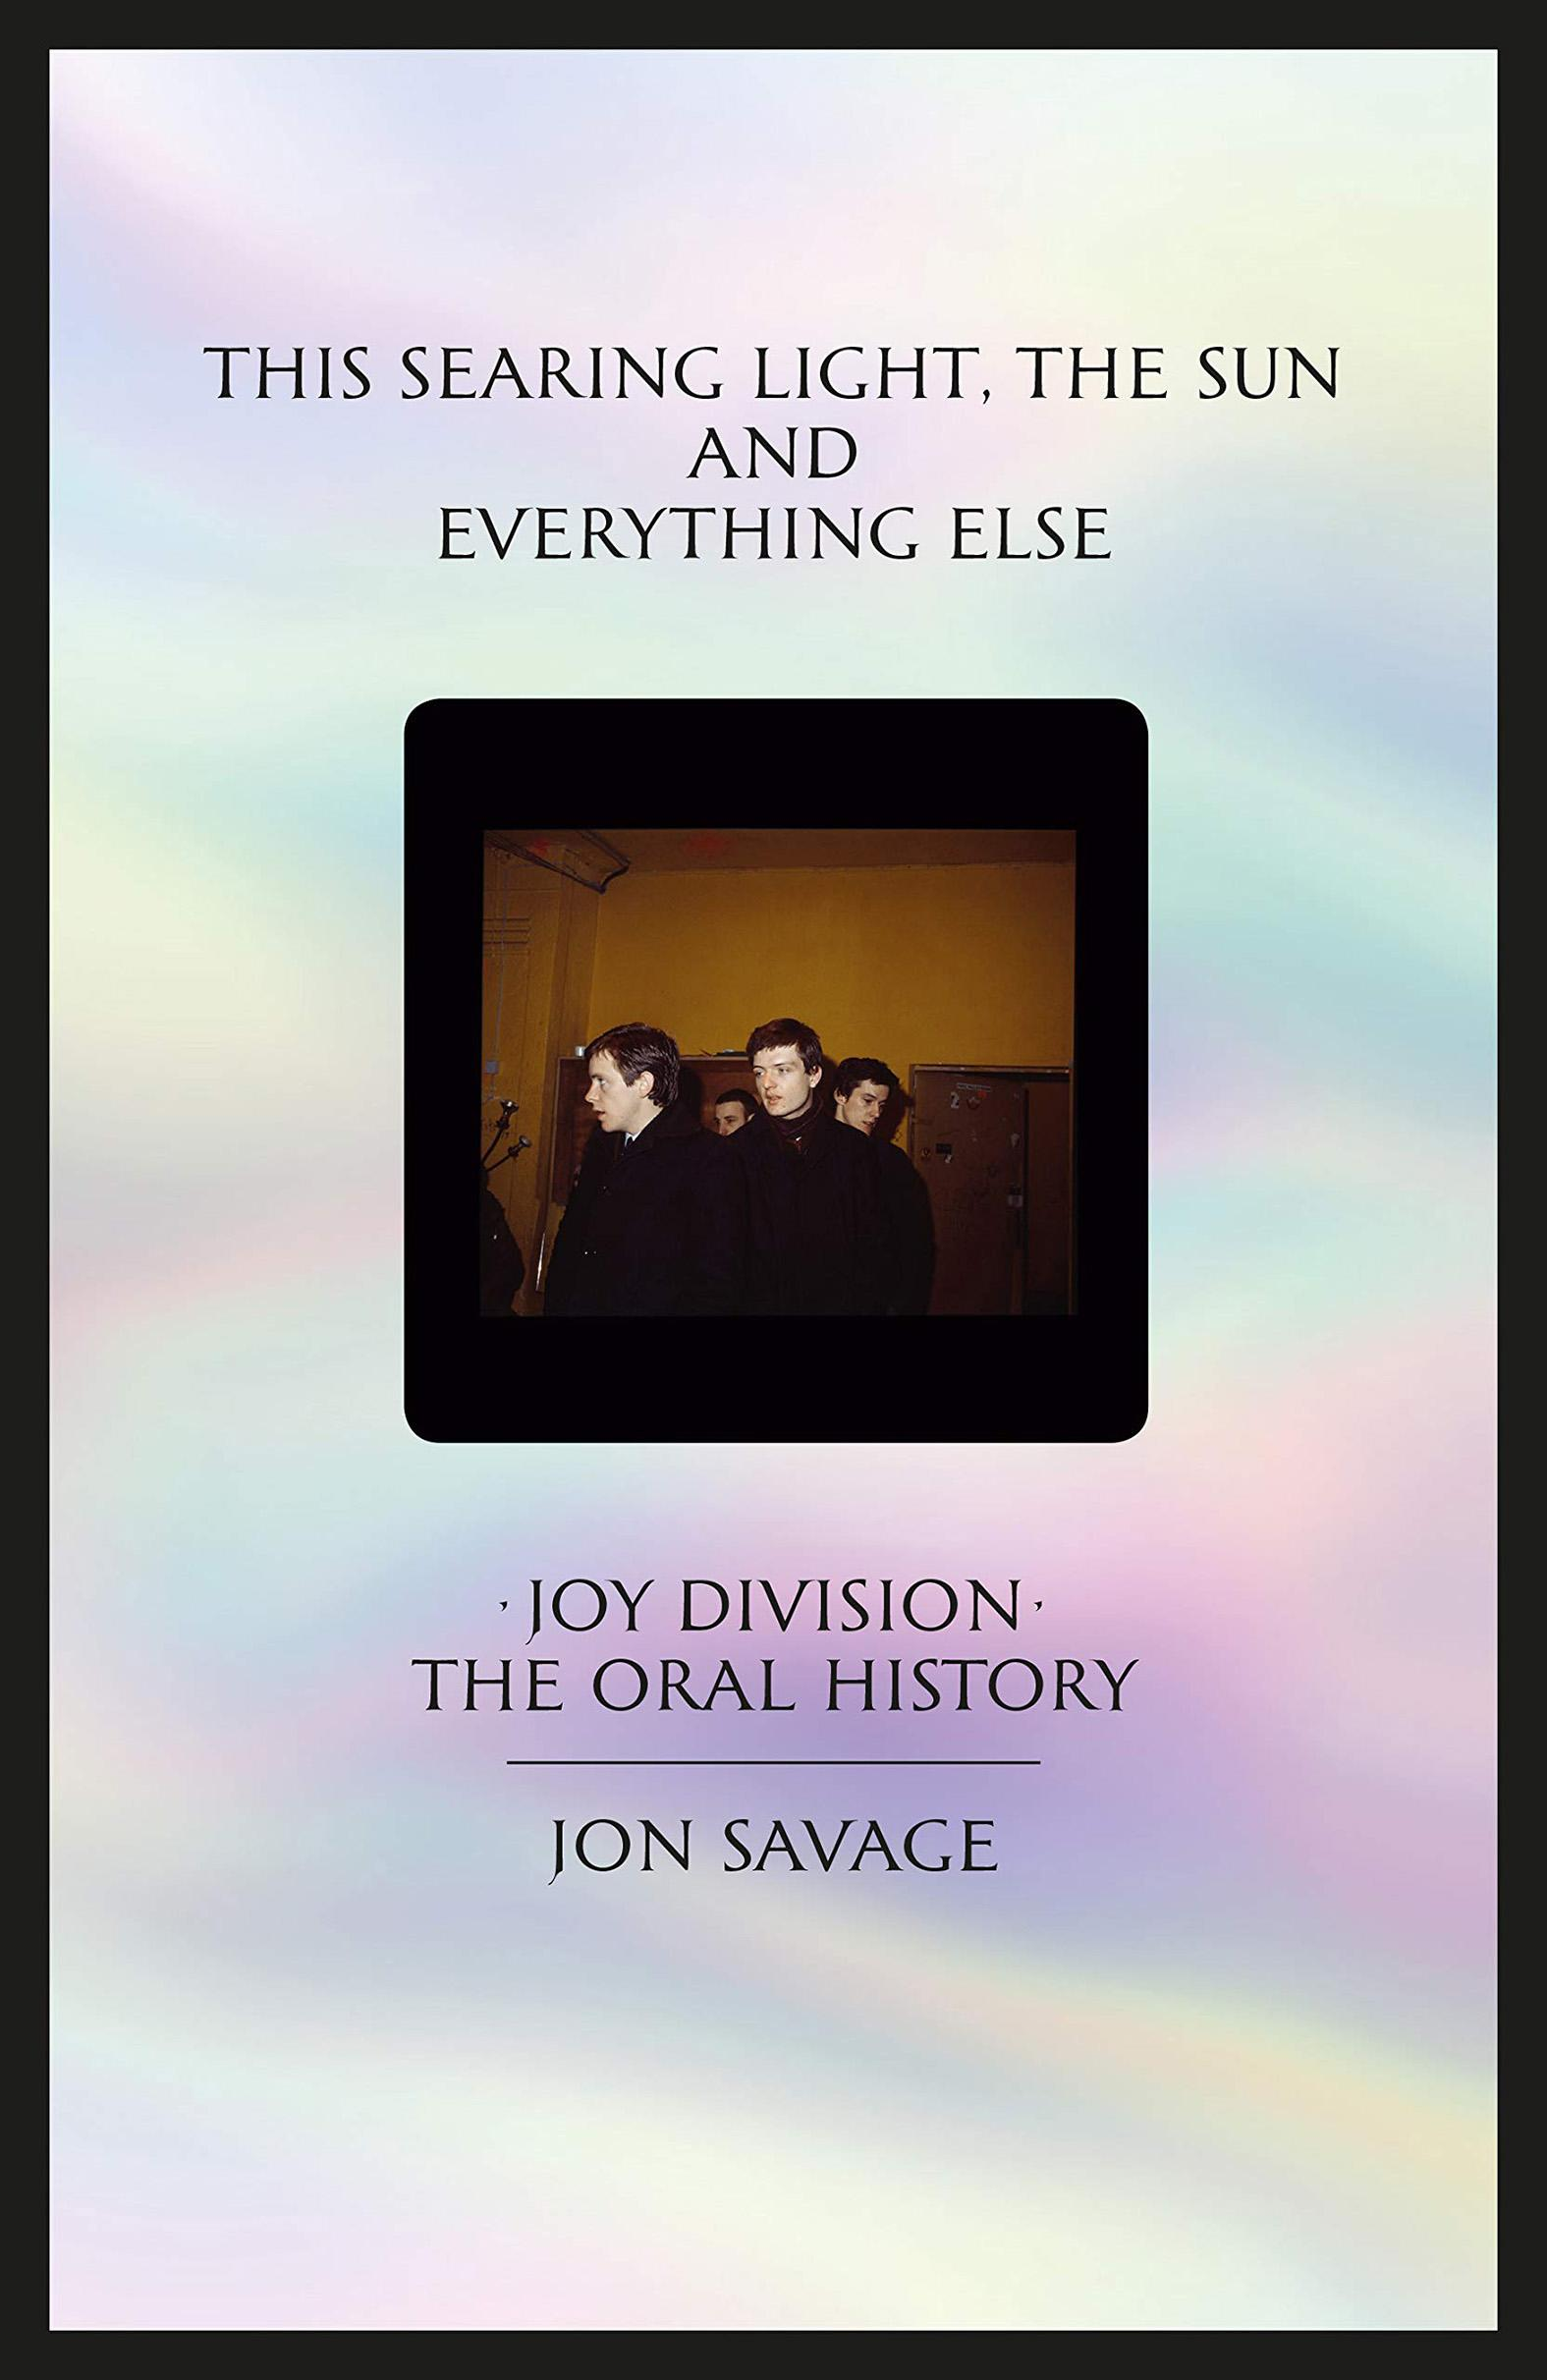 The searing light, the sun and everything else – Joy Division, The oral history (Bokomslag)